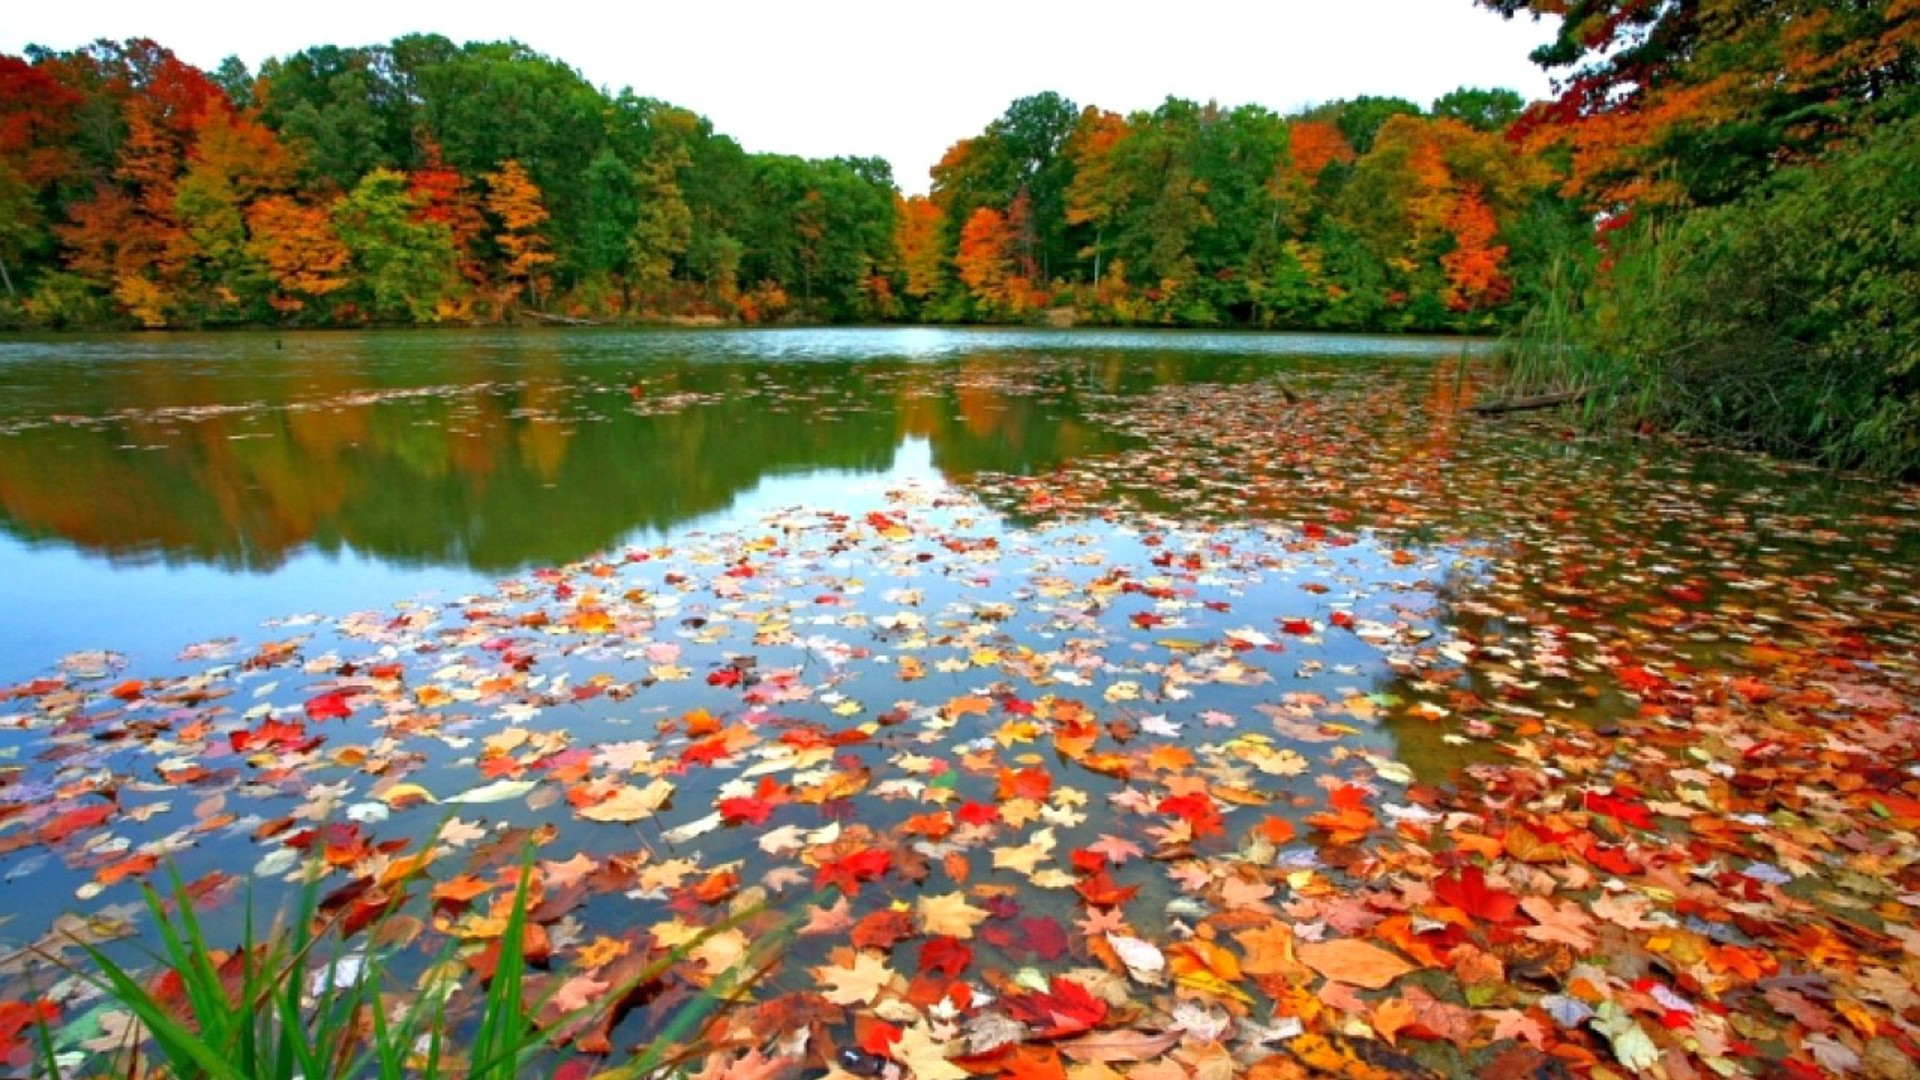 desktop backgrounds autumn Gallery 58 images 1920x1080